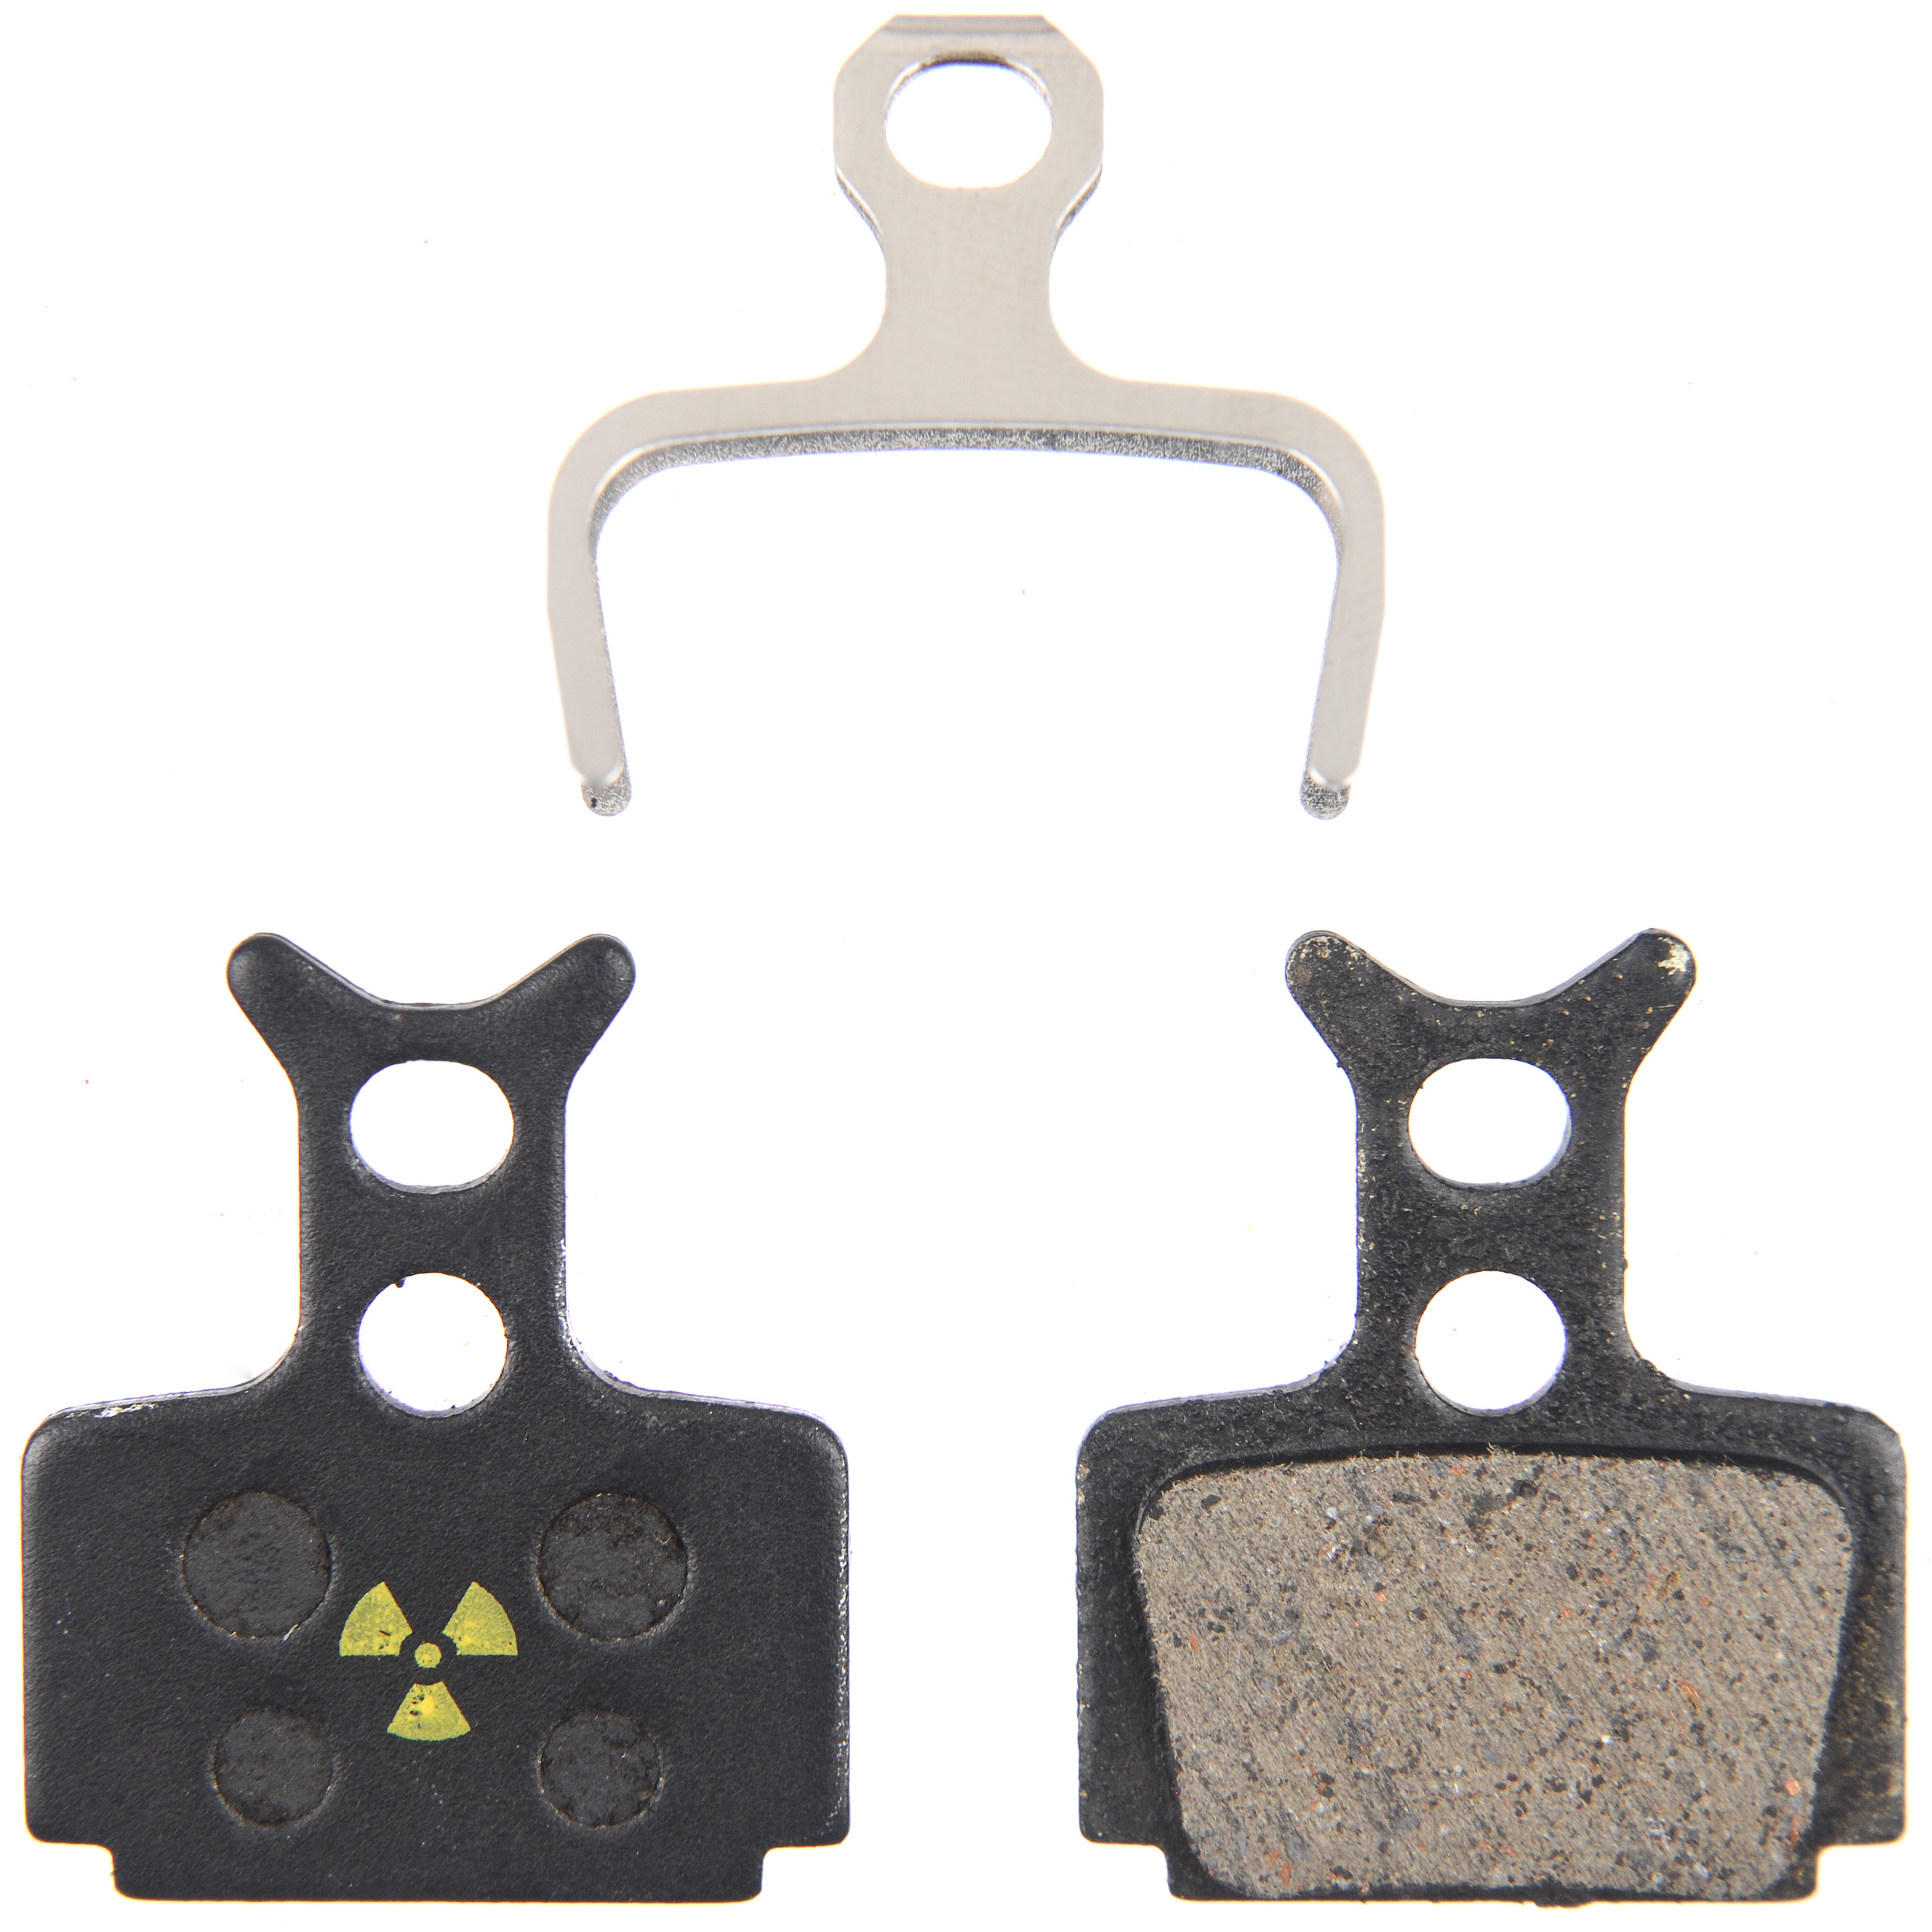 Nukeproof Formula One-R1-RX-Cura Disc Brake Pads | Brake pads